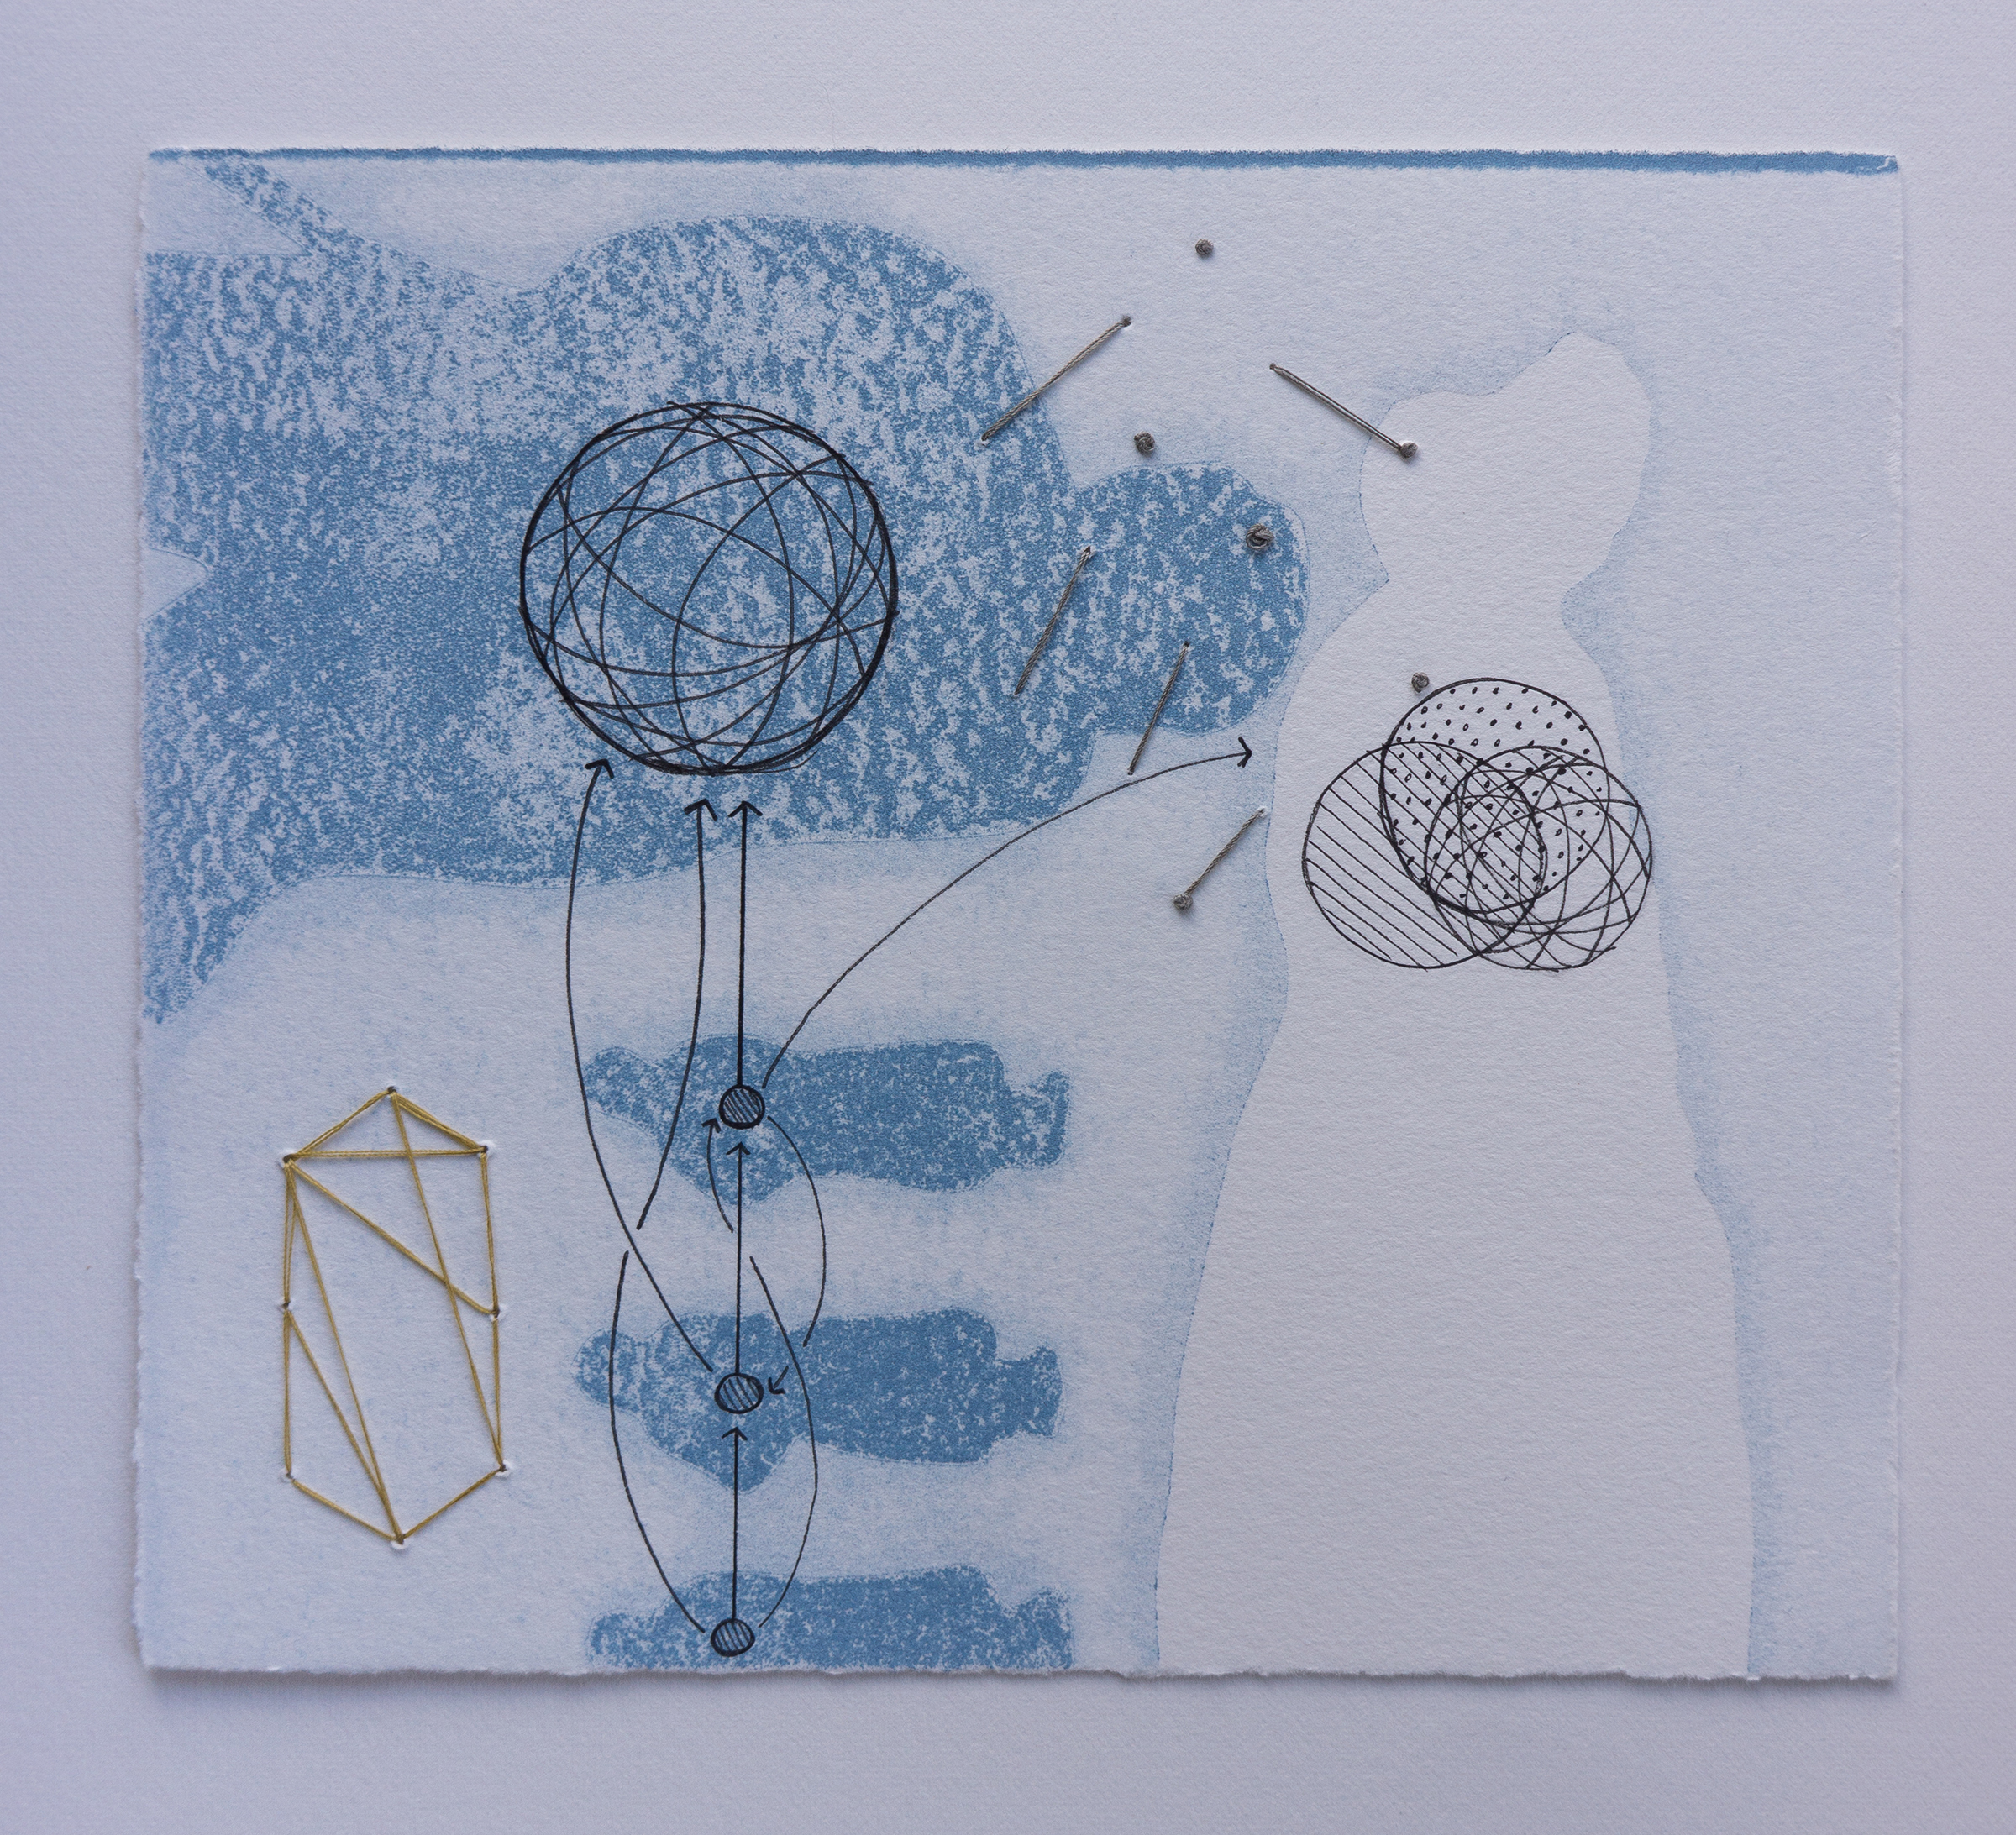 """Familiar Geometry"" (rag paper, ink, pen, thread, monoprint, drawing, embroidery, 6"" x 7"", 2016) by Catherine Reinhart and Allison Metzger. Photo by Catherine Reinhart."